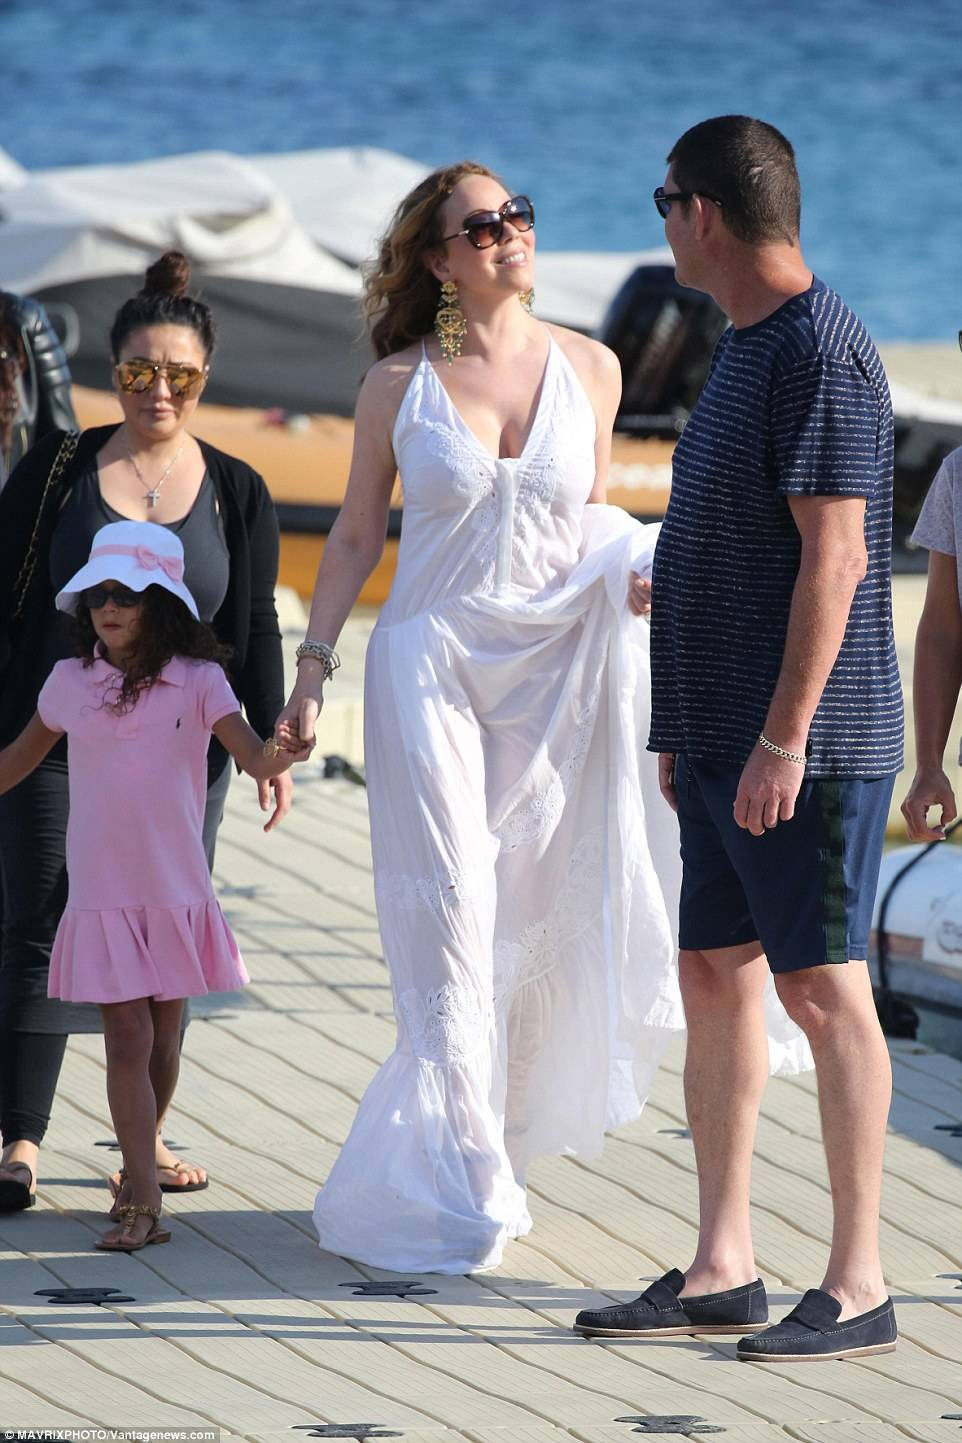 Mariah and James have been soaking up the sun on holiday in Greece with her twins Monroe and Moroccan, five, from her previous marriage to Nick Cannon